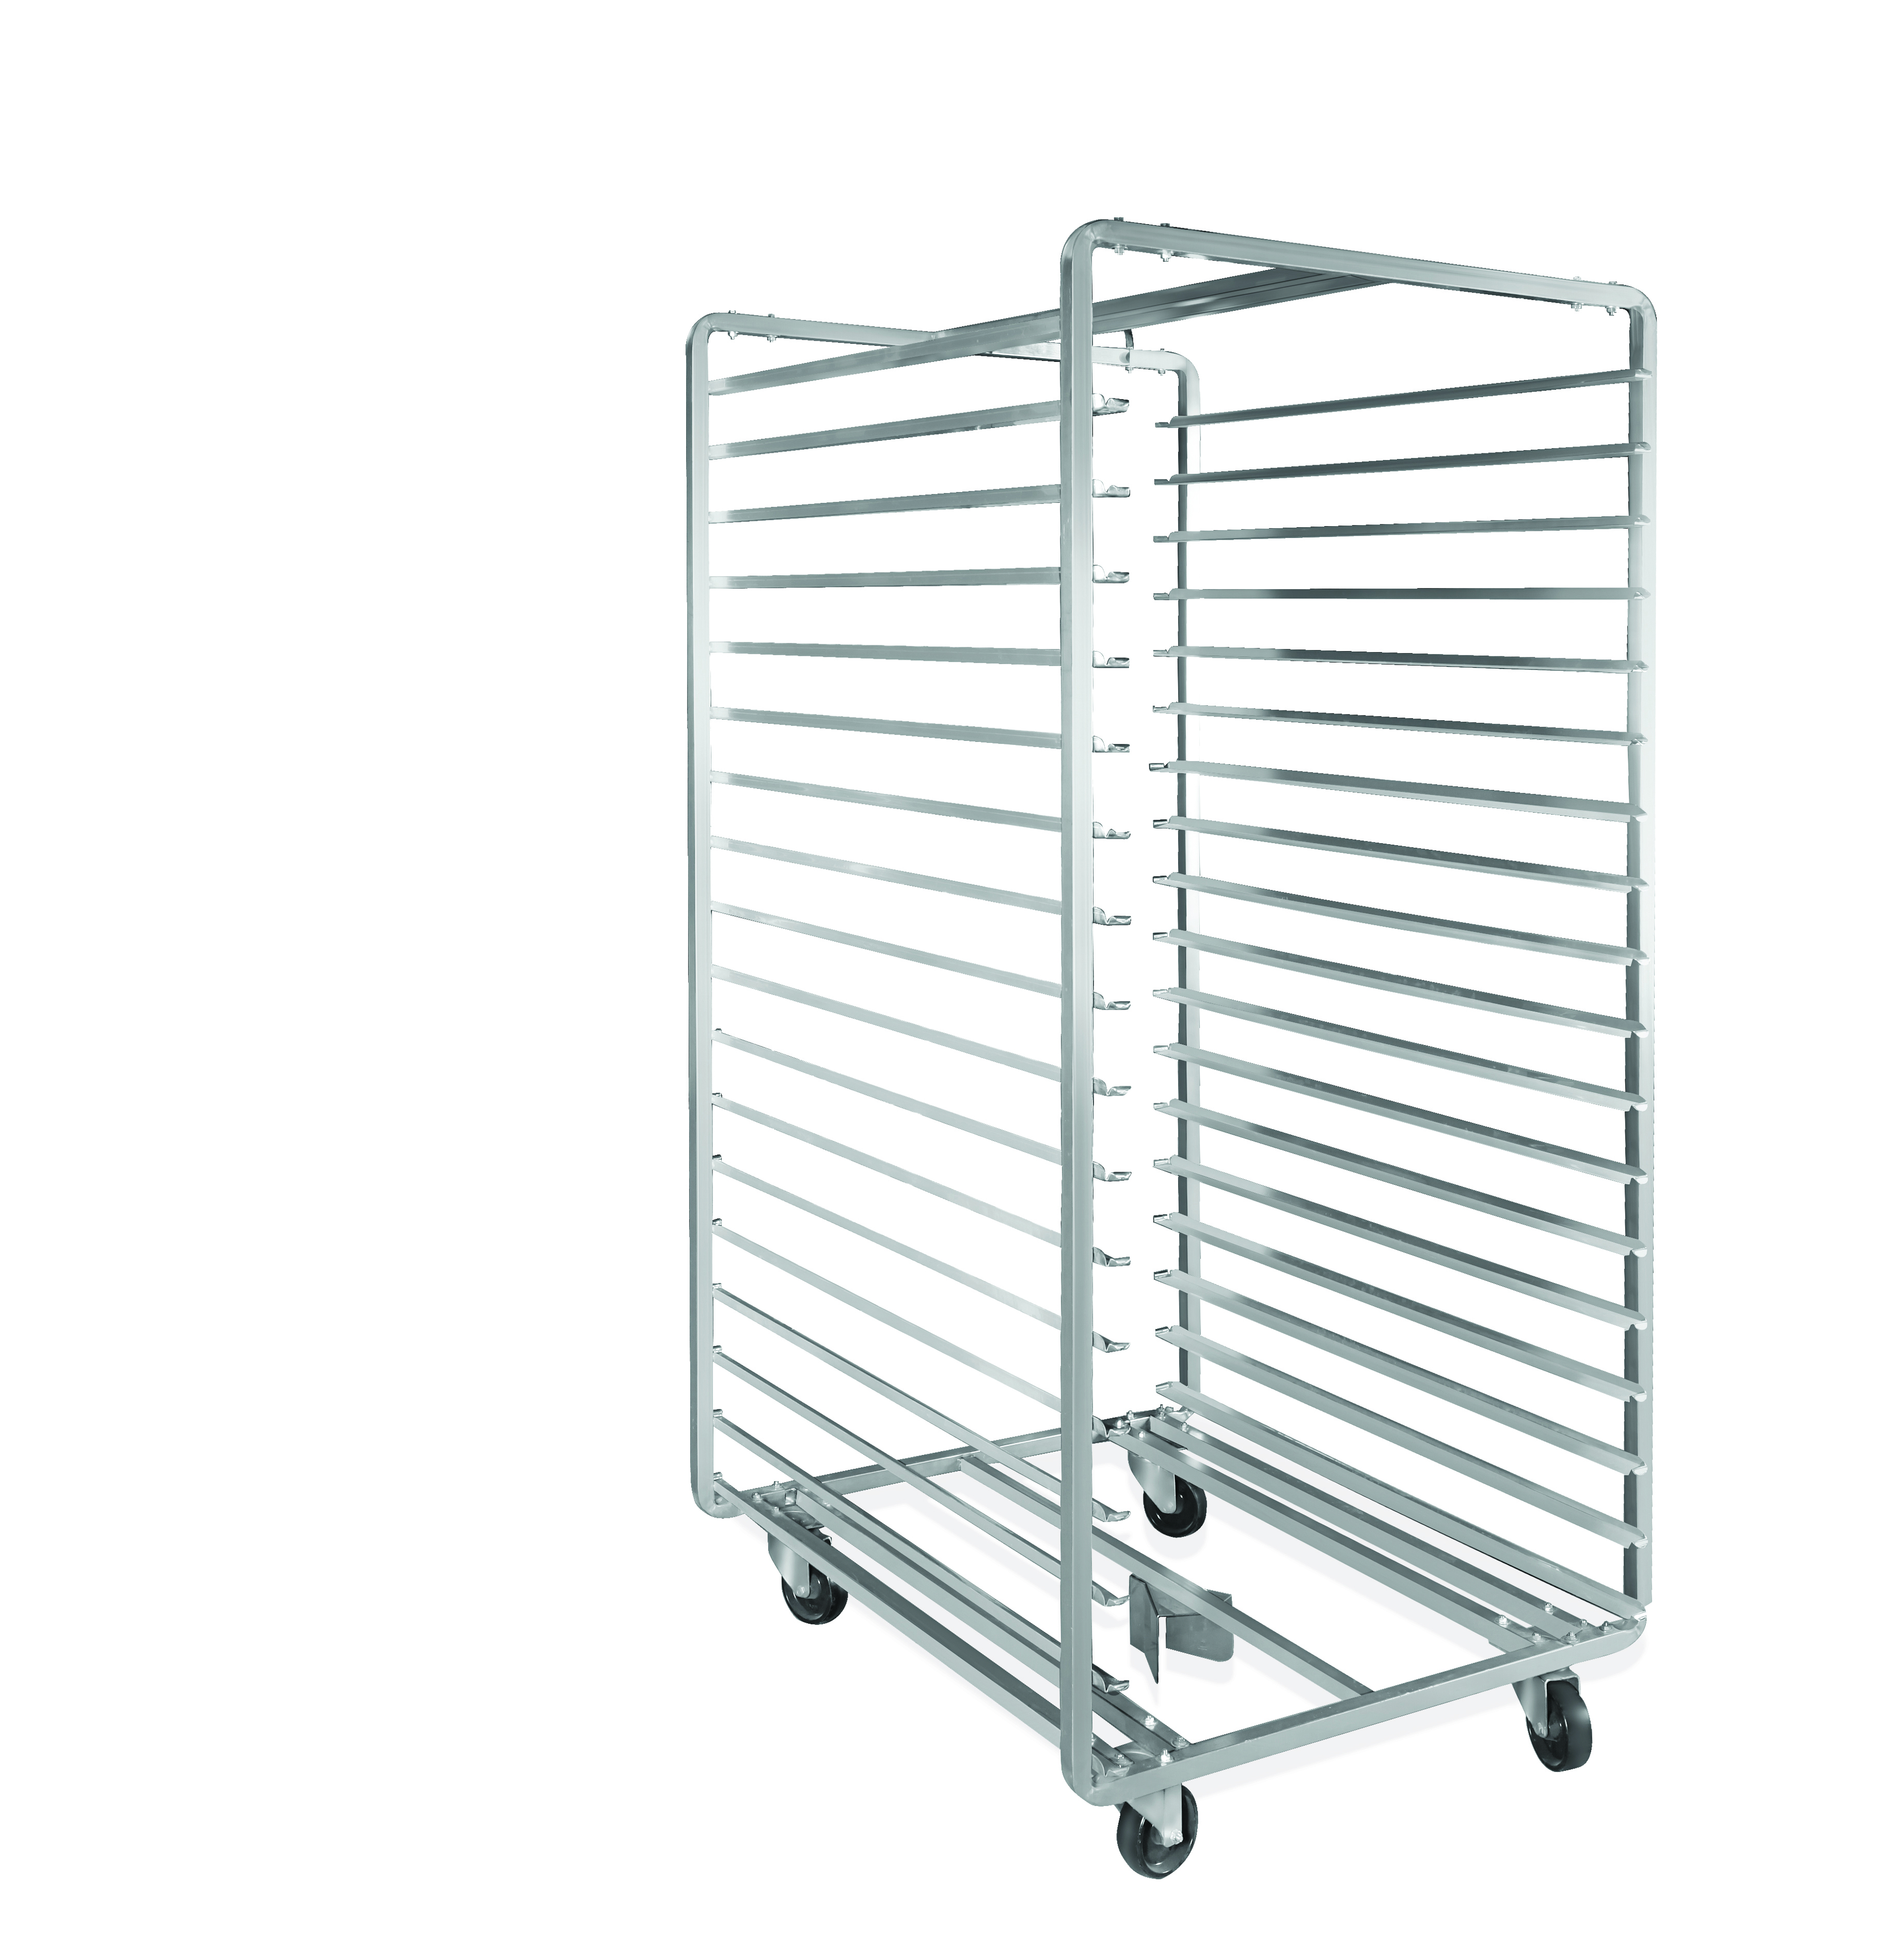 ROTARY OVEN TROLLY